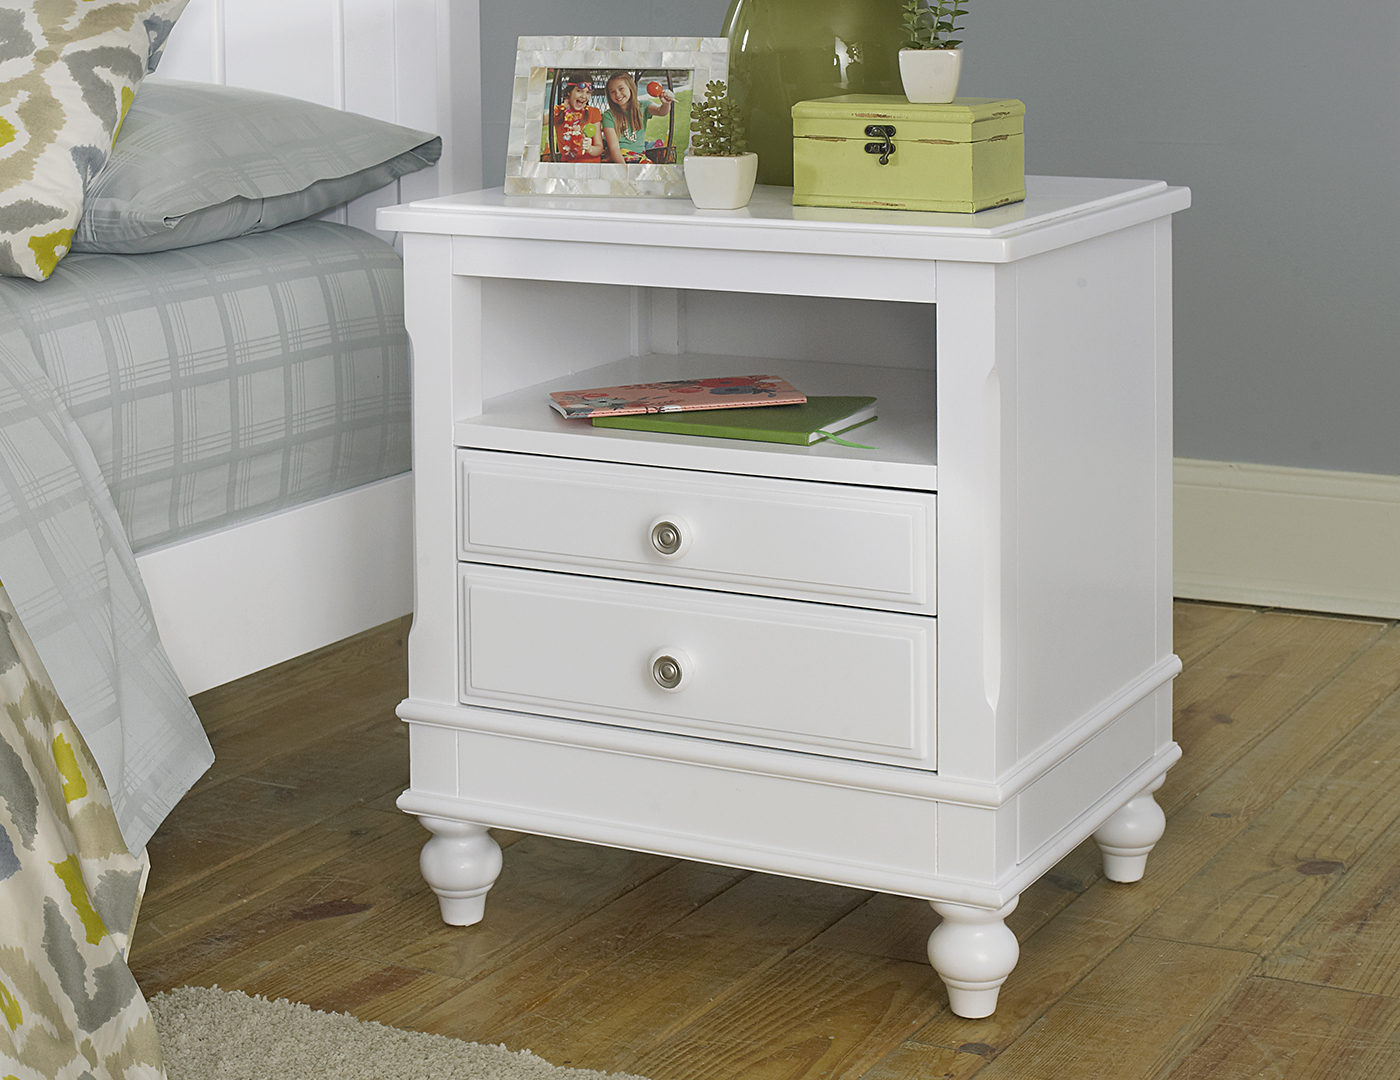 bedroom nightstands steinhafels 10583 | 470481905